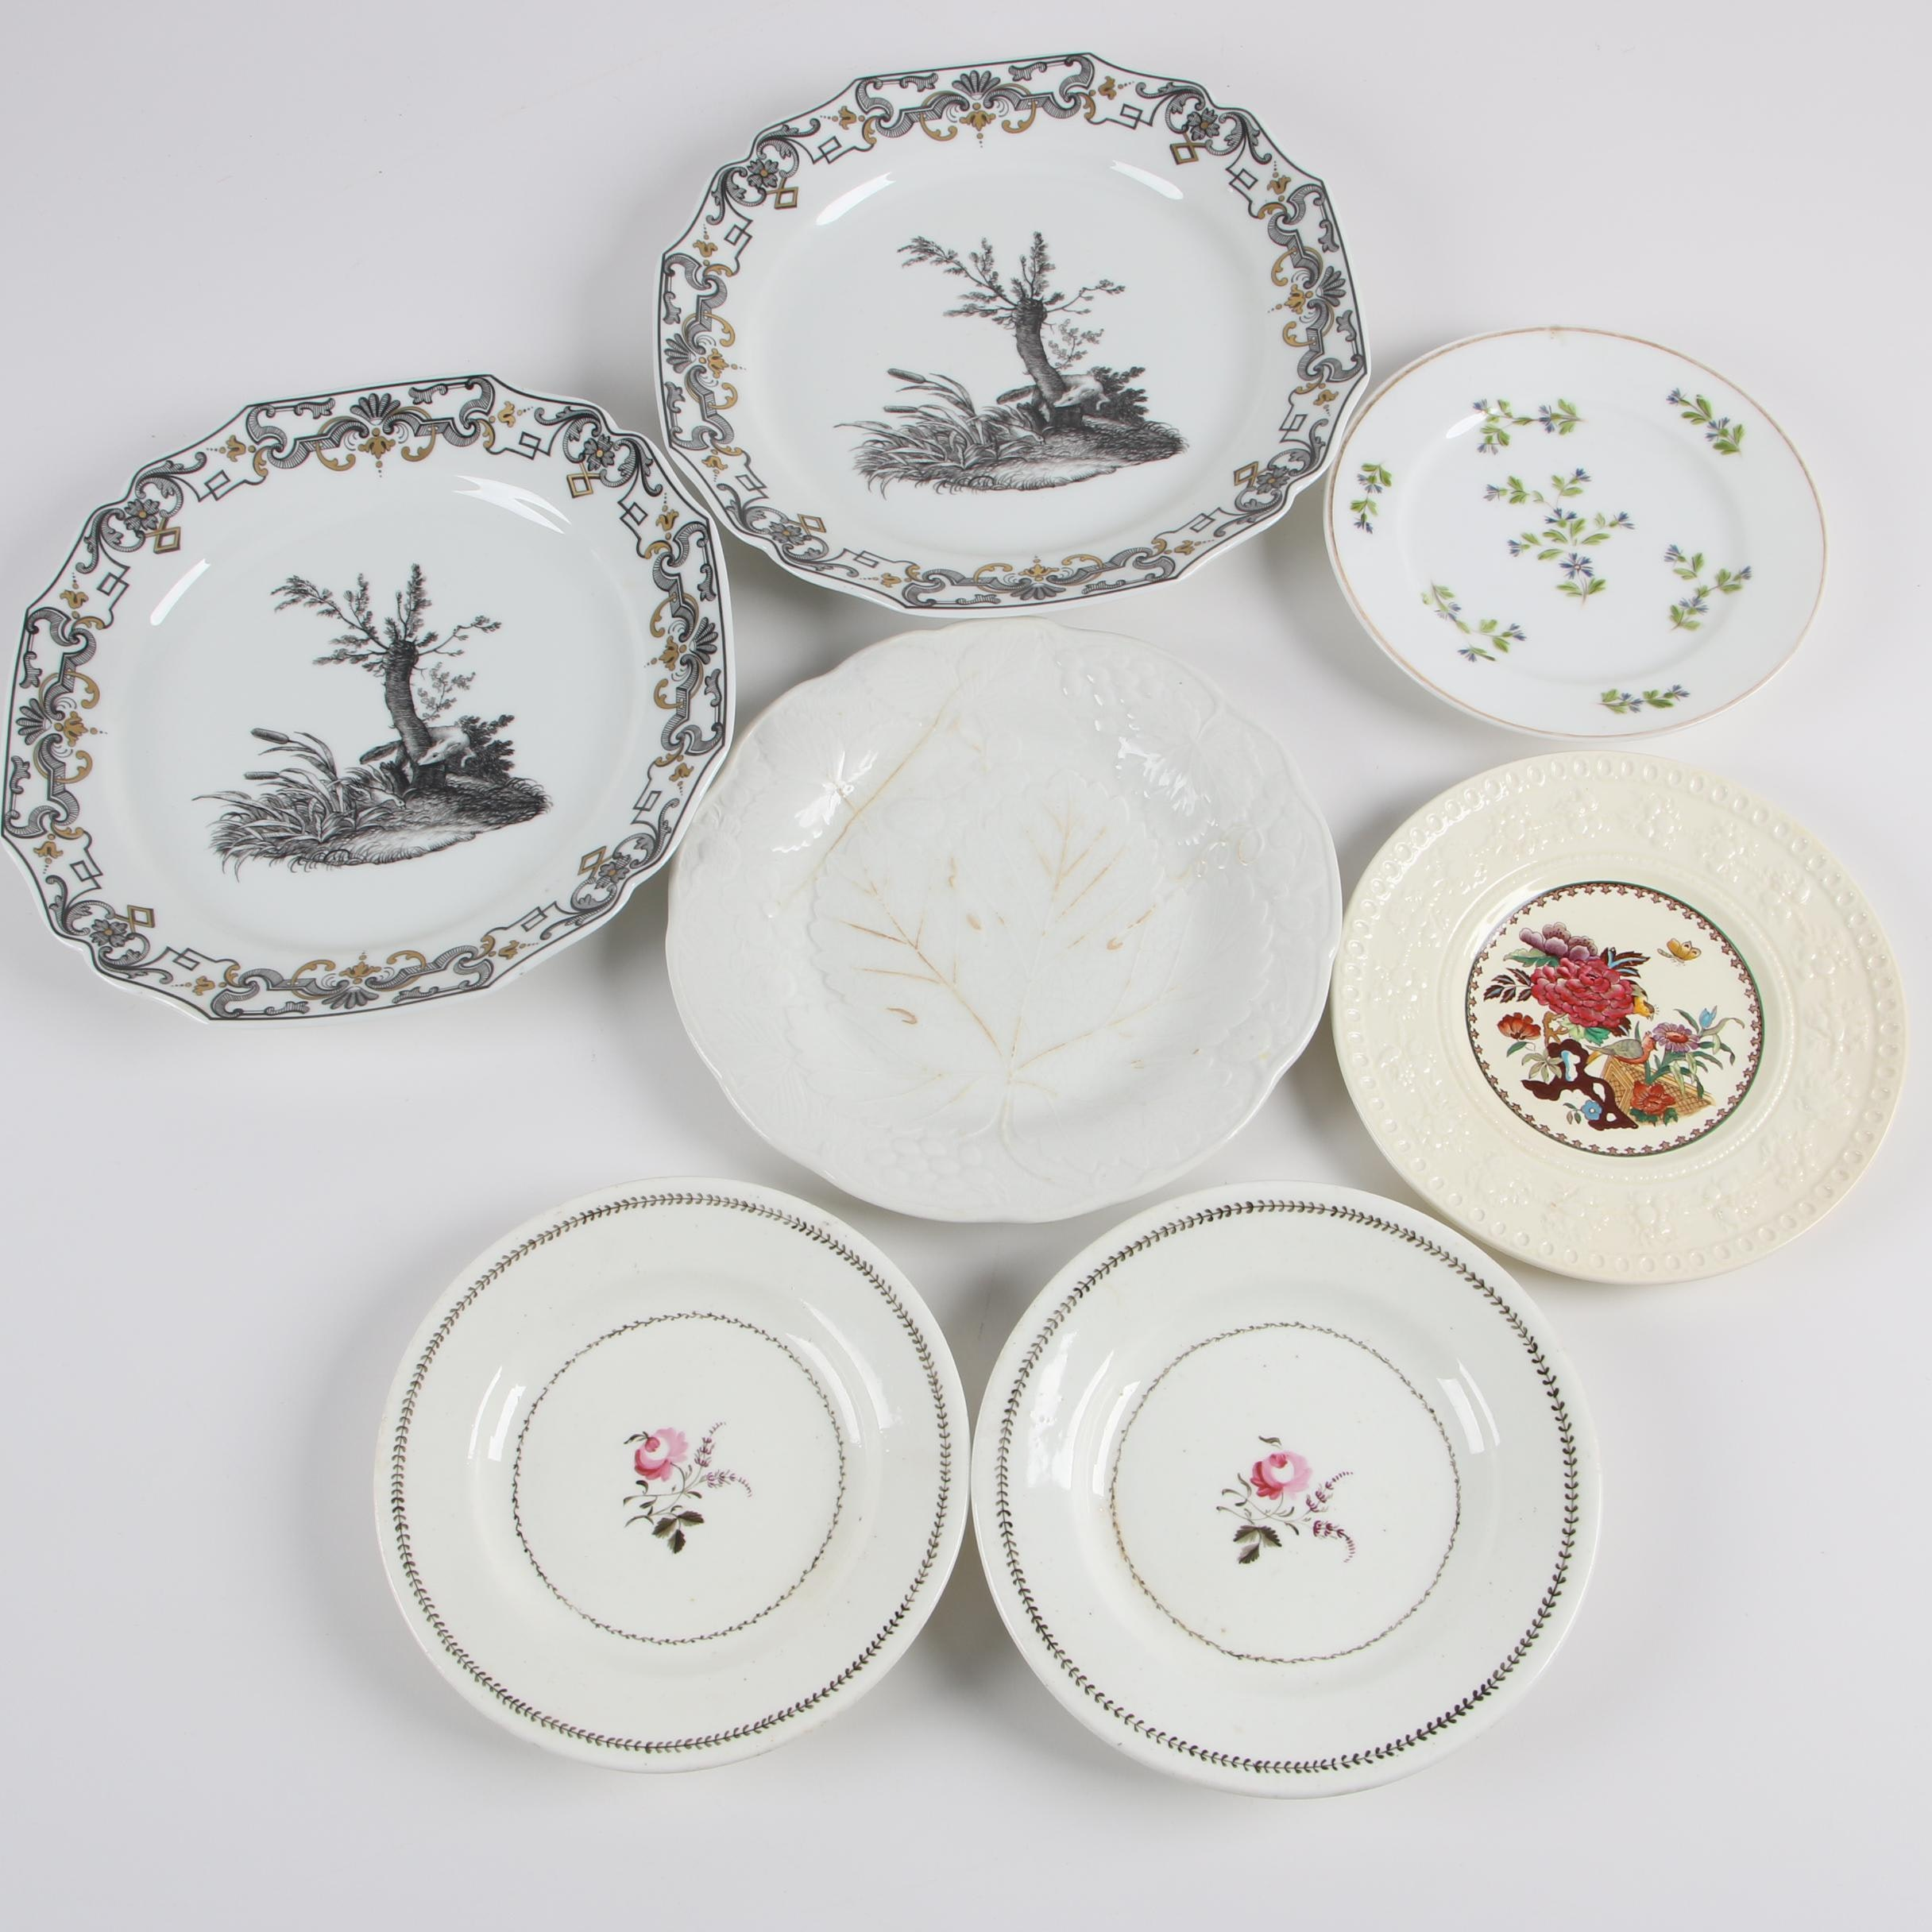 19th and 20th Century Porcelain Plates with Wedgwood, Burleigh, and Mottahedeh